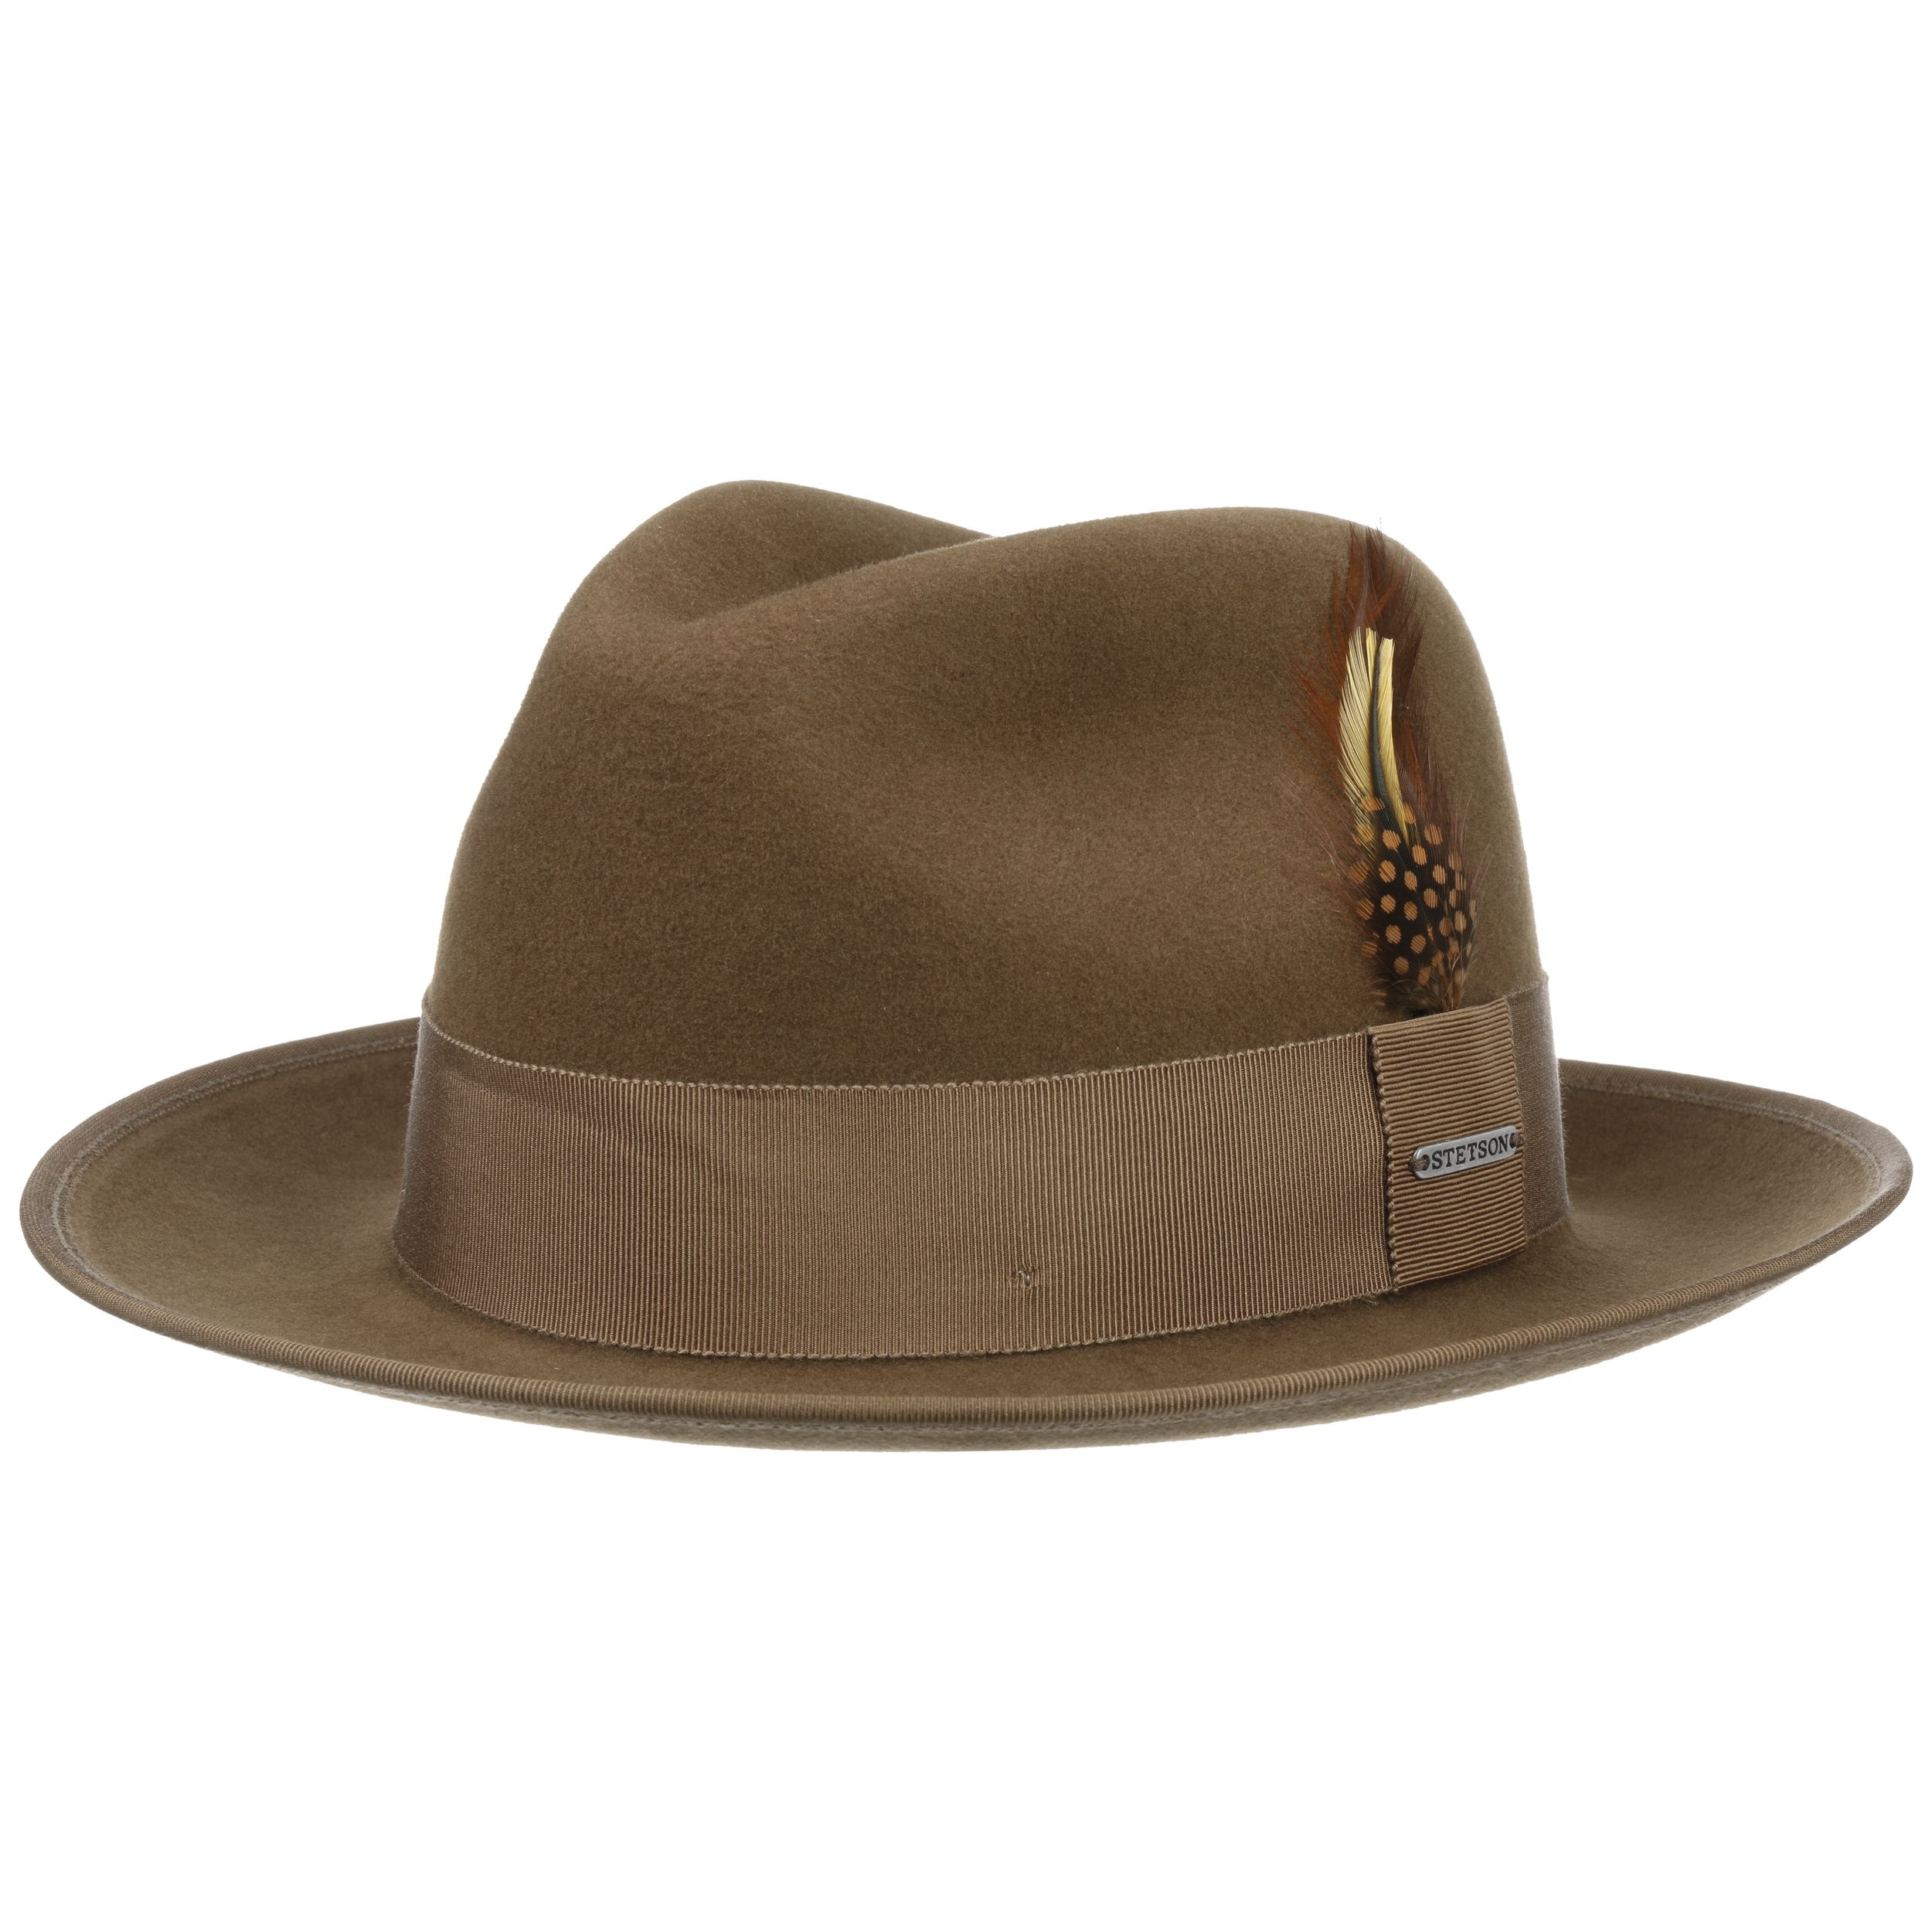 Vermont Fedora VitaFelt Hat brown